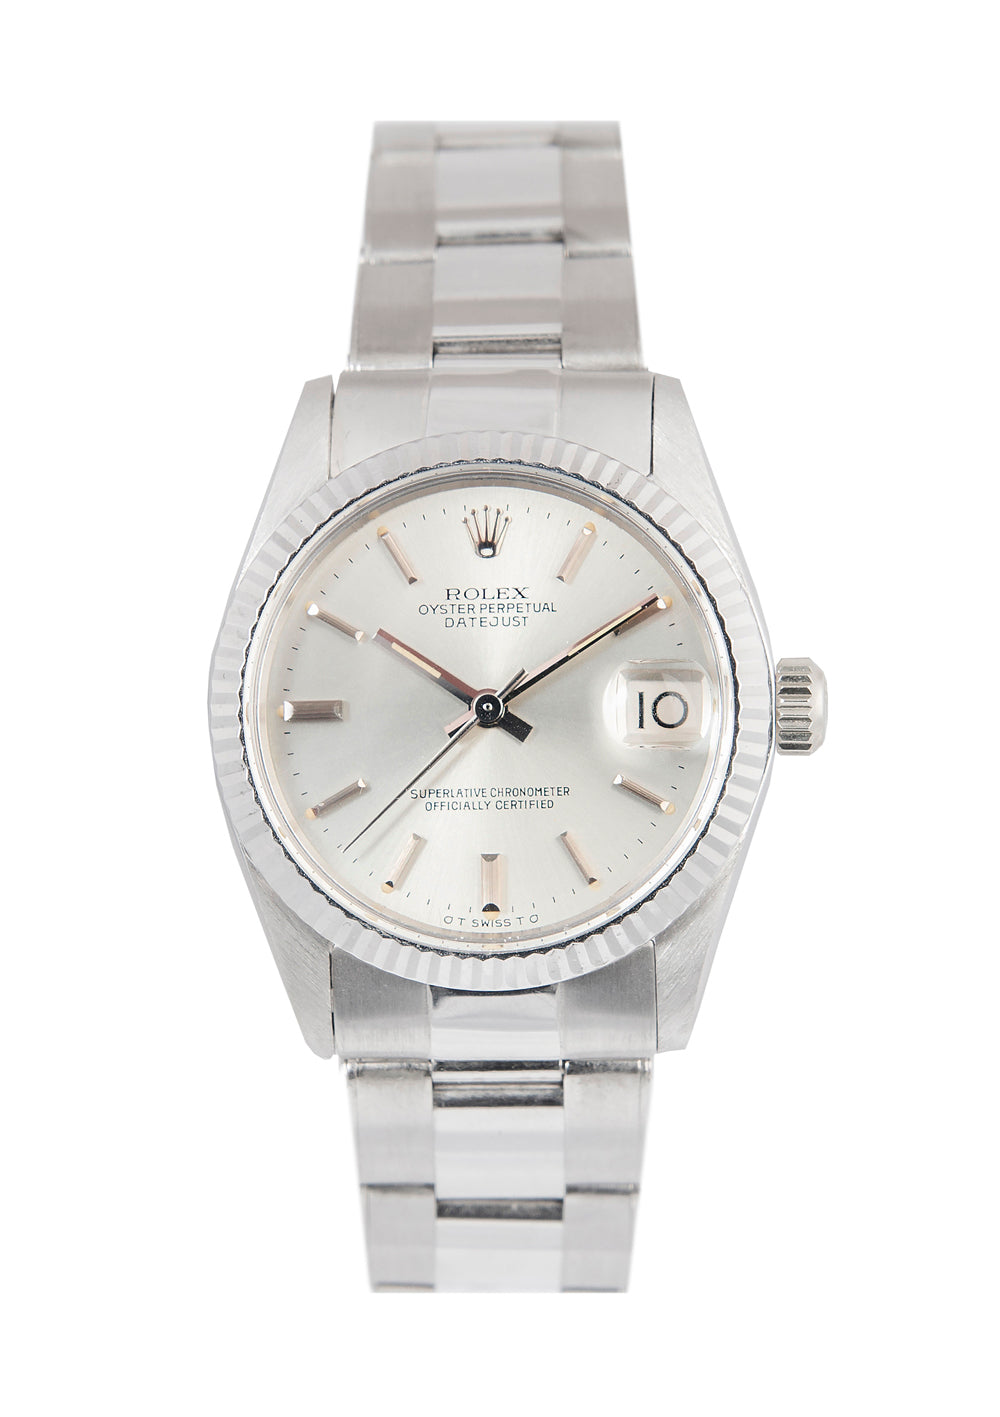 Rolex Datejust Midsize 18k White Gold watch with Silver Dial, Ref: 6827